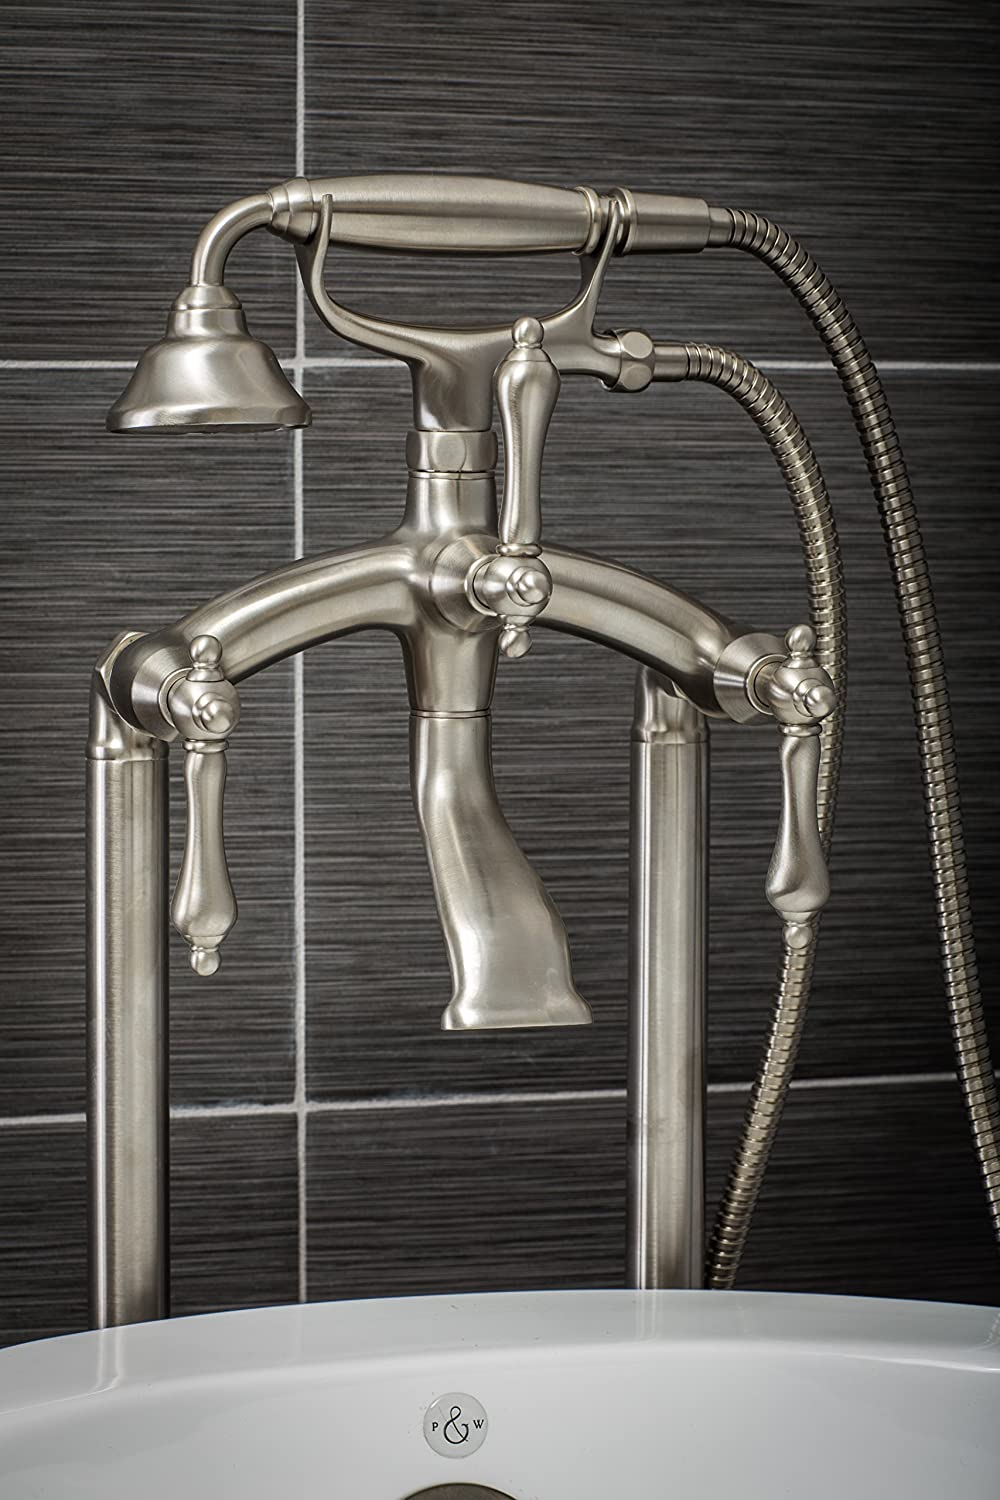 Luxury Clawfoot Tub or Freestanding Tub Filler Faucet, Vintage ...